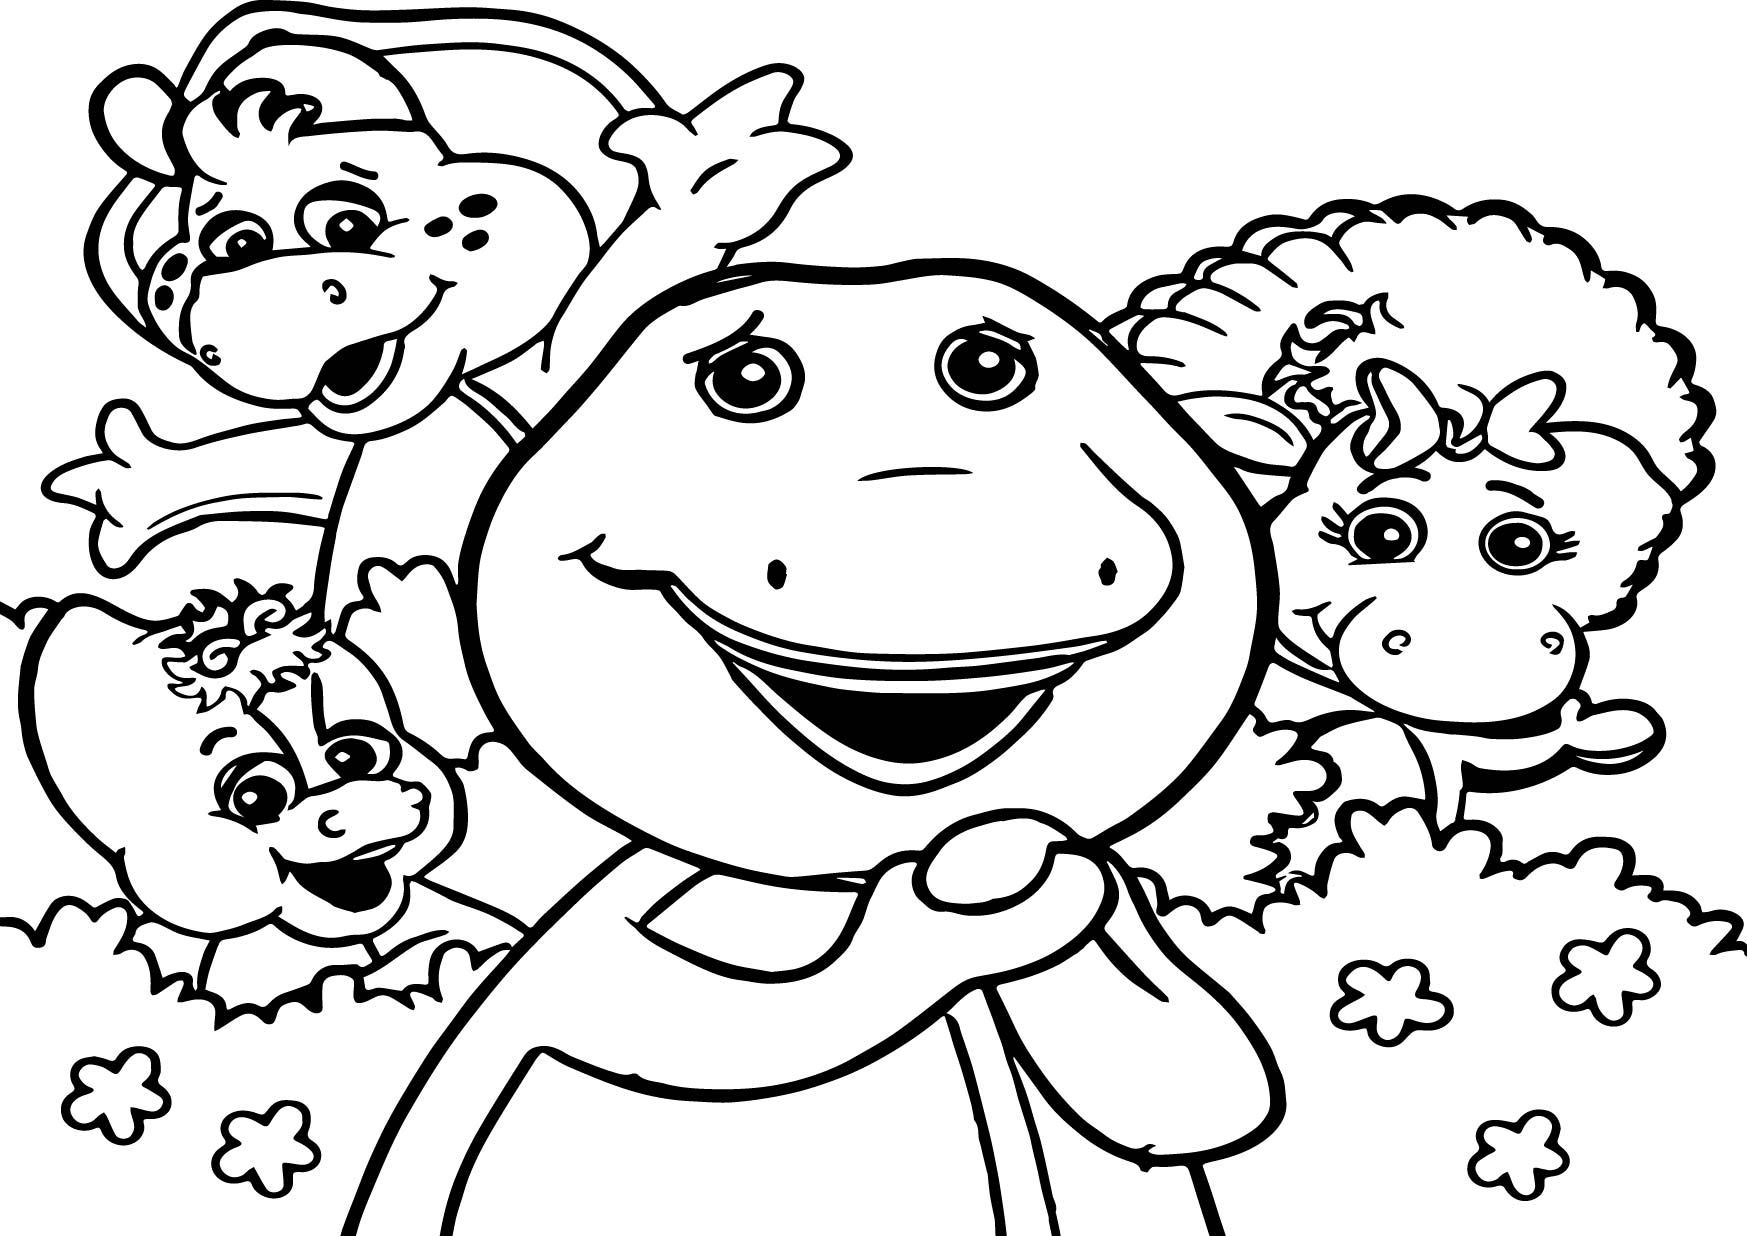 Barney And Friends Drawing At Getdrawings